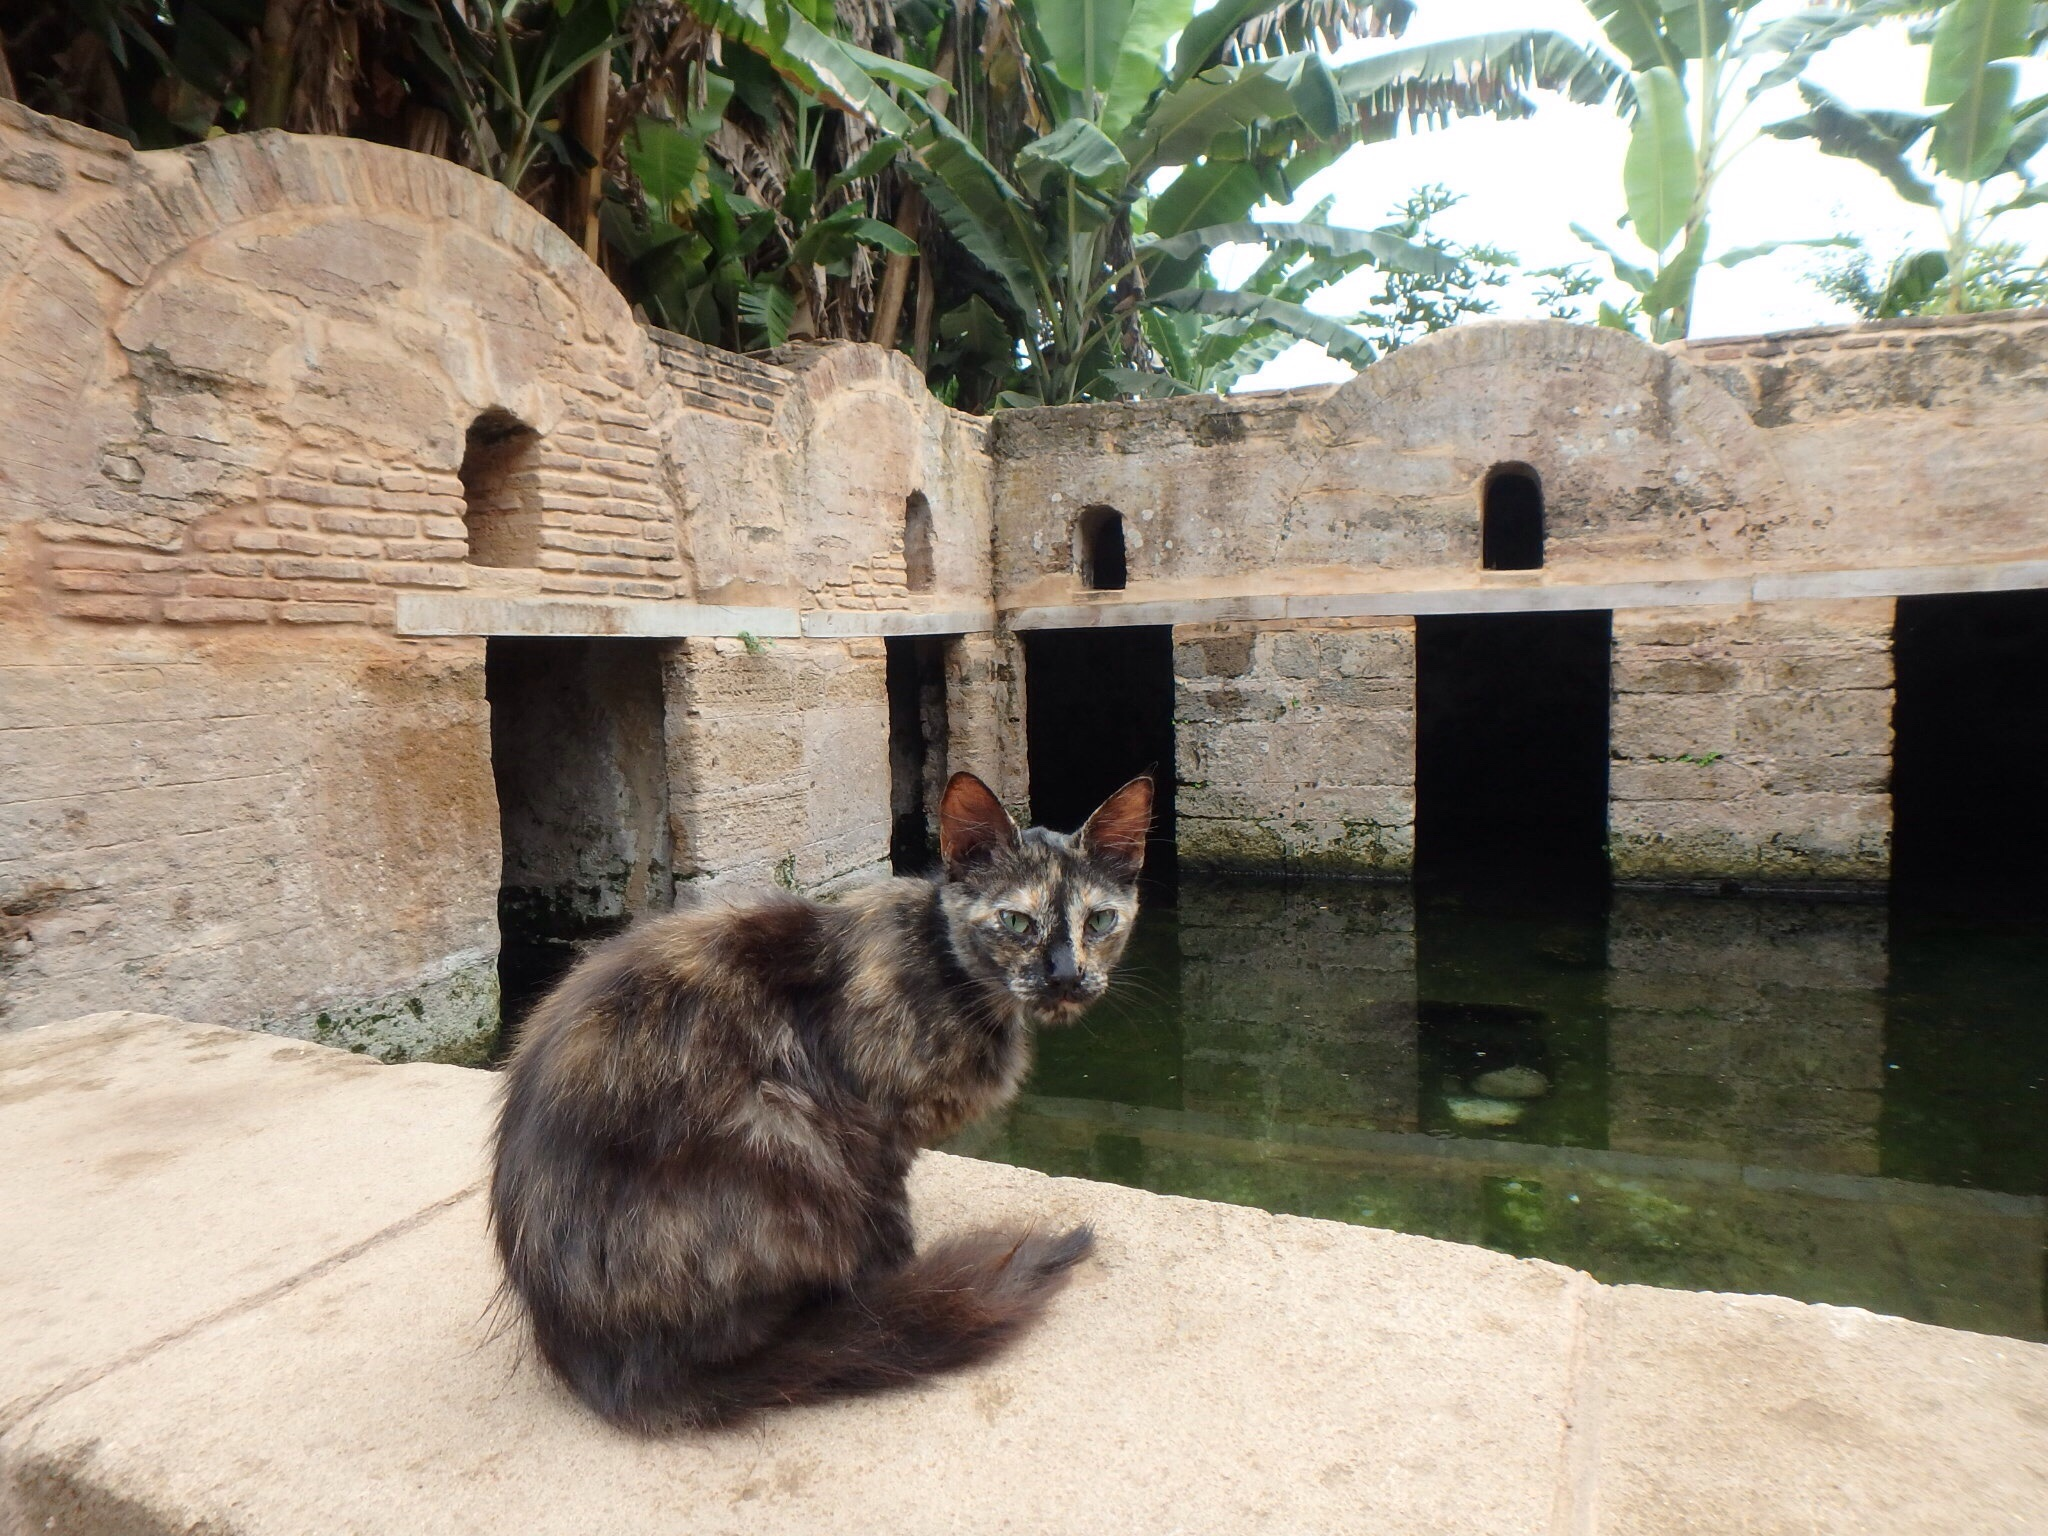 This cat and many others roam the grounds. Behind, the eel pool offers believers a hope for fertility.